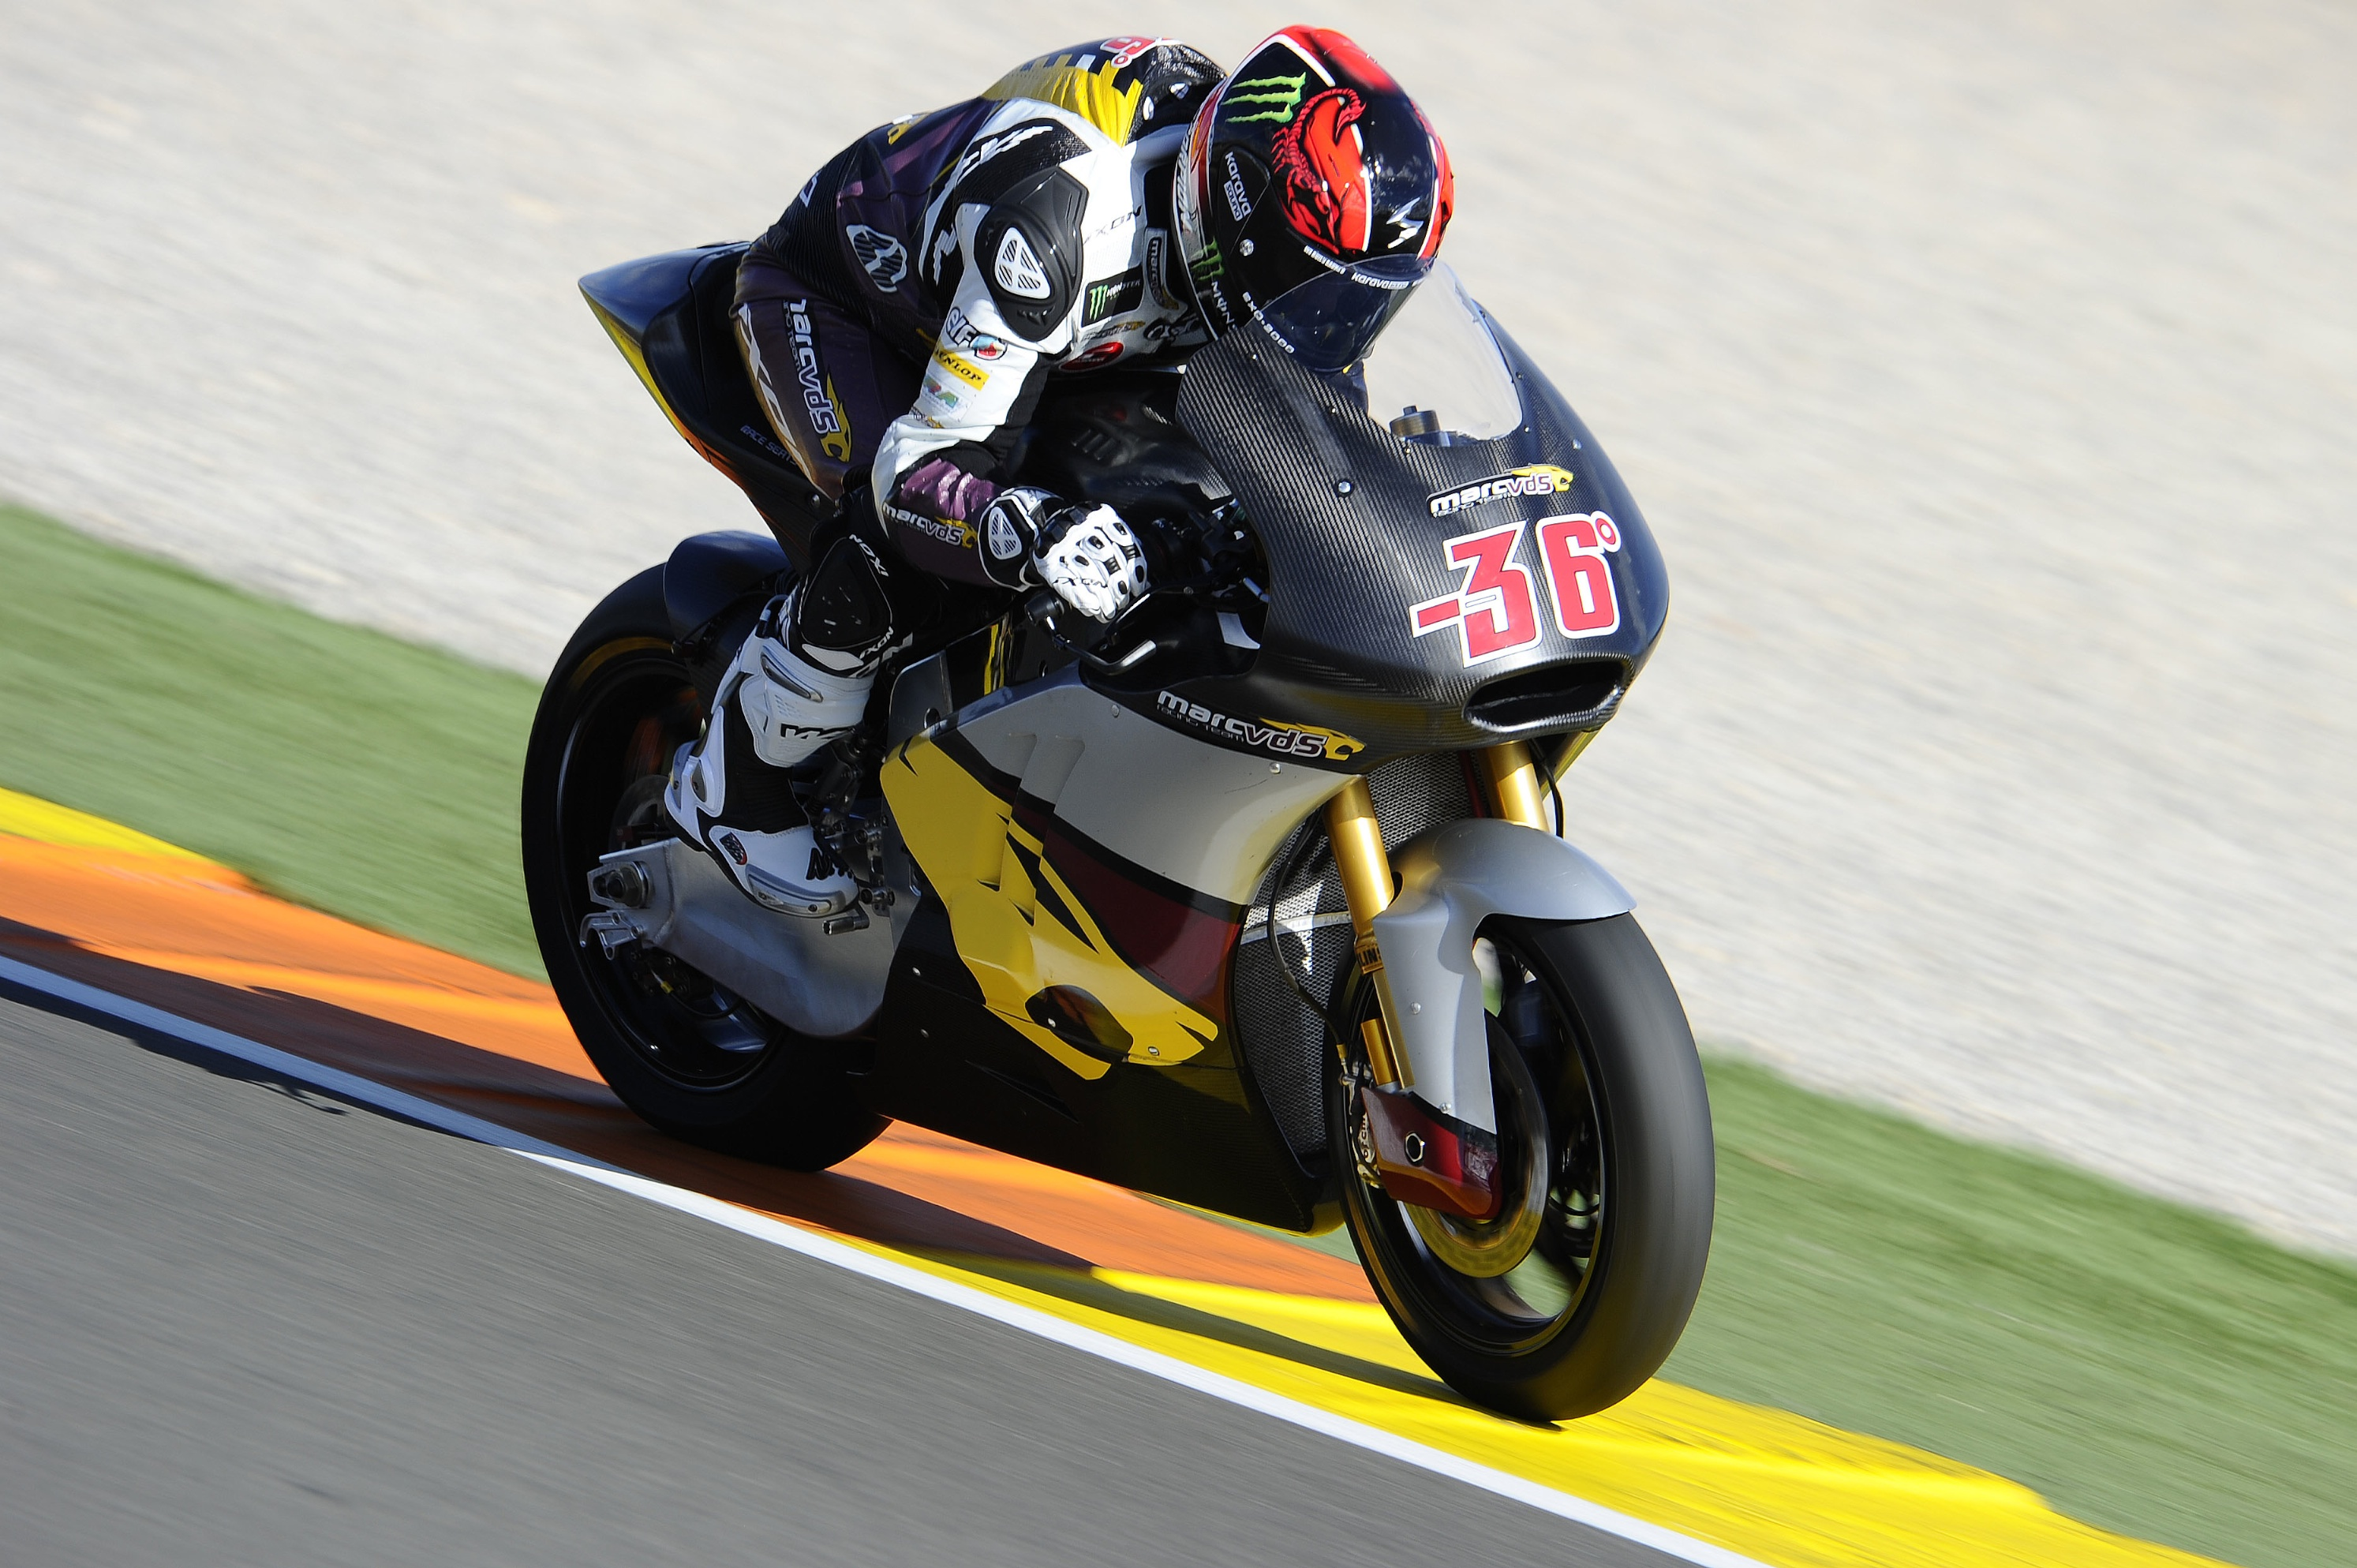 """Mika Kallio: 1st – 1'42.169 """"""""The first two days we confirmed the settings we tested in Valencia, keeping our preferred tyres for the race and qualifying simulations today. In the race simulation I was happy with my speed and consistency, with my best and worst laps separated by just half a second. In the qualifying simulation I finally had the feeling that was missing last year - the feeling of being on the limit. I knew I was on a fast lap, but it's always good to see it confirmed on timesheet, especially when your name is on the top! Okay, it's only testing, but it all builds confidence ahead of the first race"""